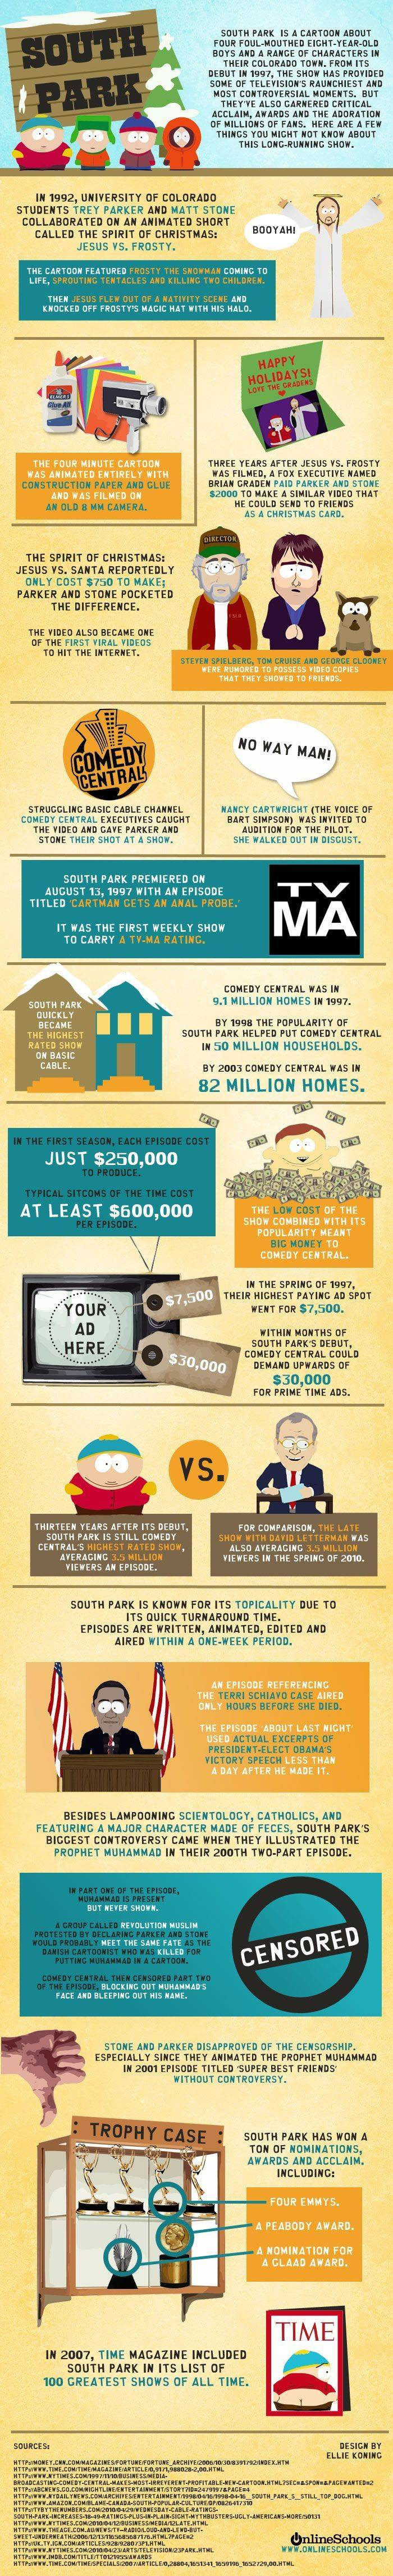 07SouthPark-Interesting Facts About SouthPark (InfographicInfographicKickassFacts.com